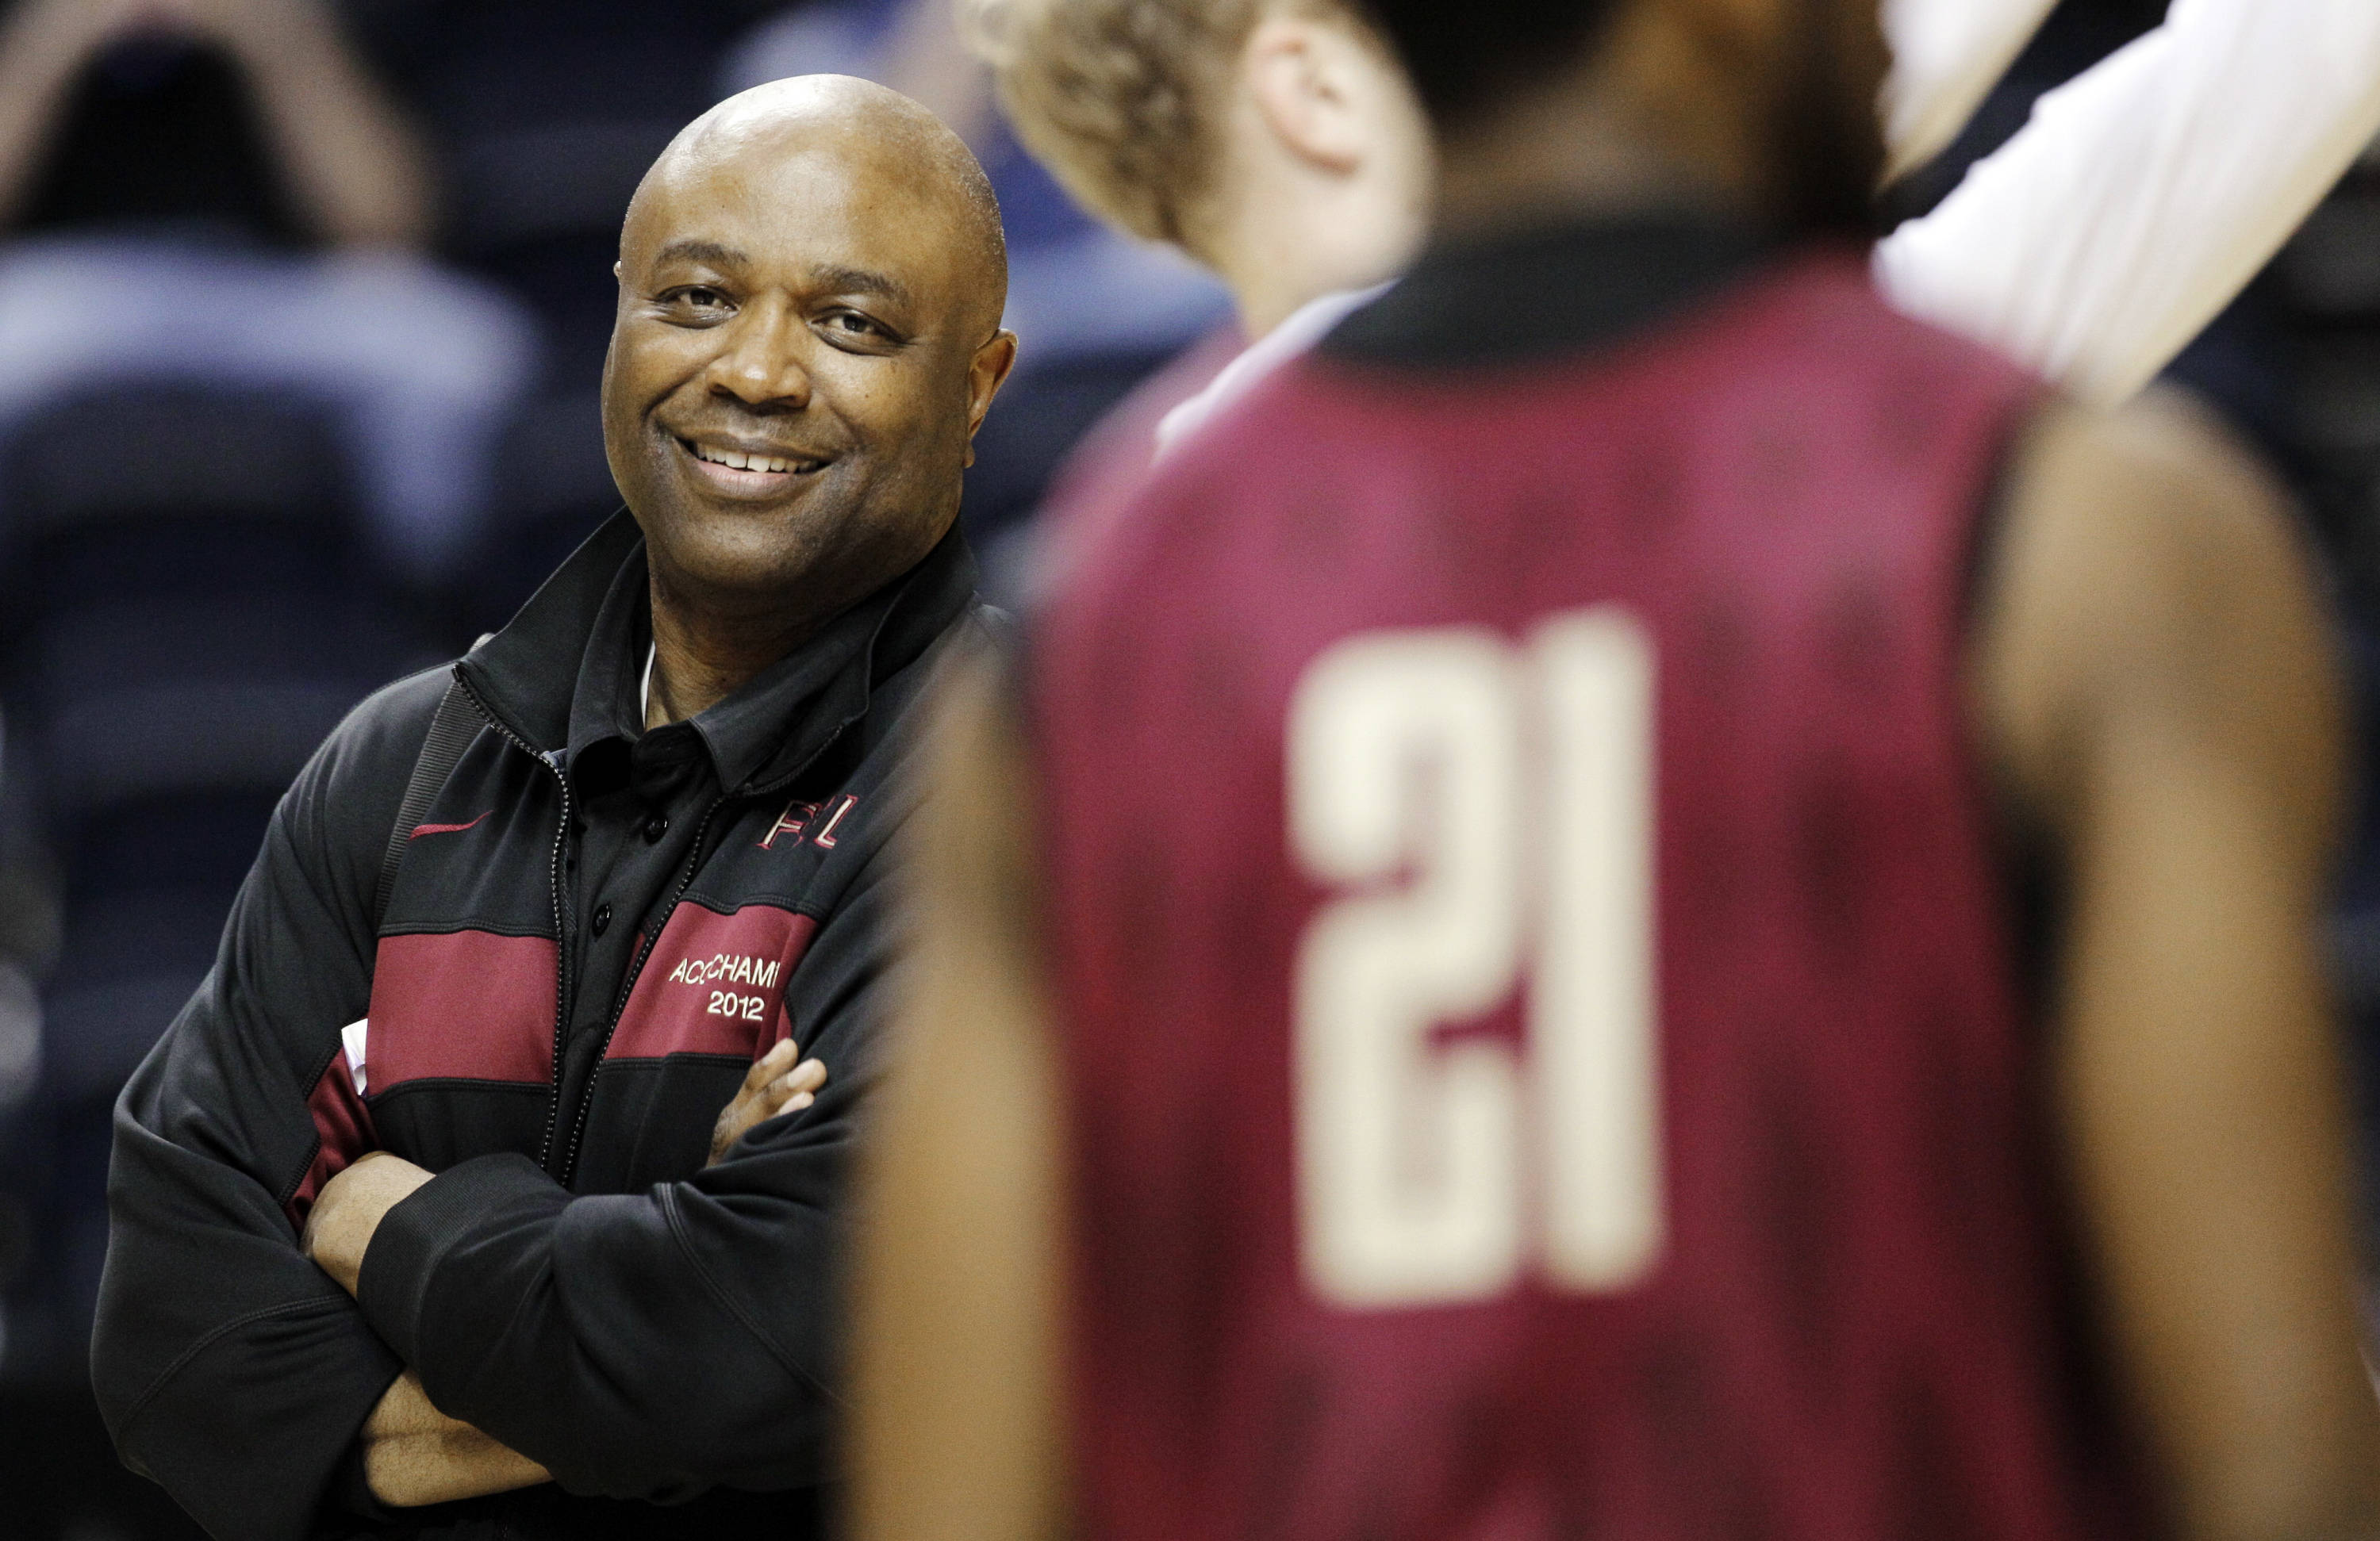 Florida State head coach Leonard Hamilton, left, watches his players during practice for an NCAA college basketball tournament game on Thursday, March 15, 2012, in Nashville, Tenn. Florida State is scheduled to play St. Bonaventure on Friday. (AP Photo/Mark Humphrey)